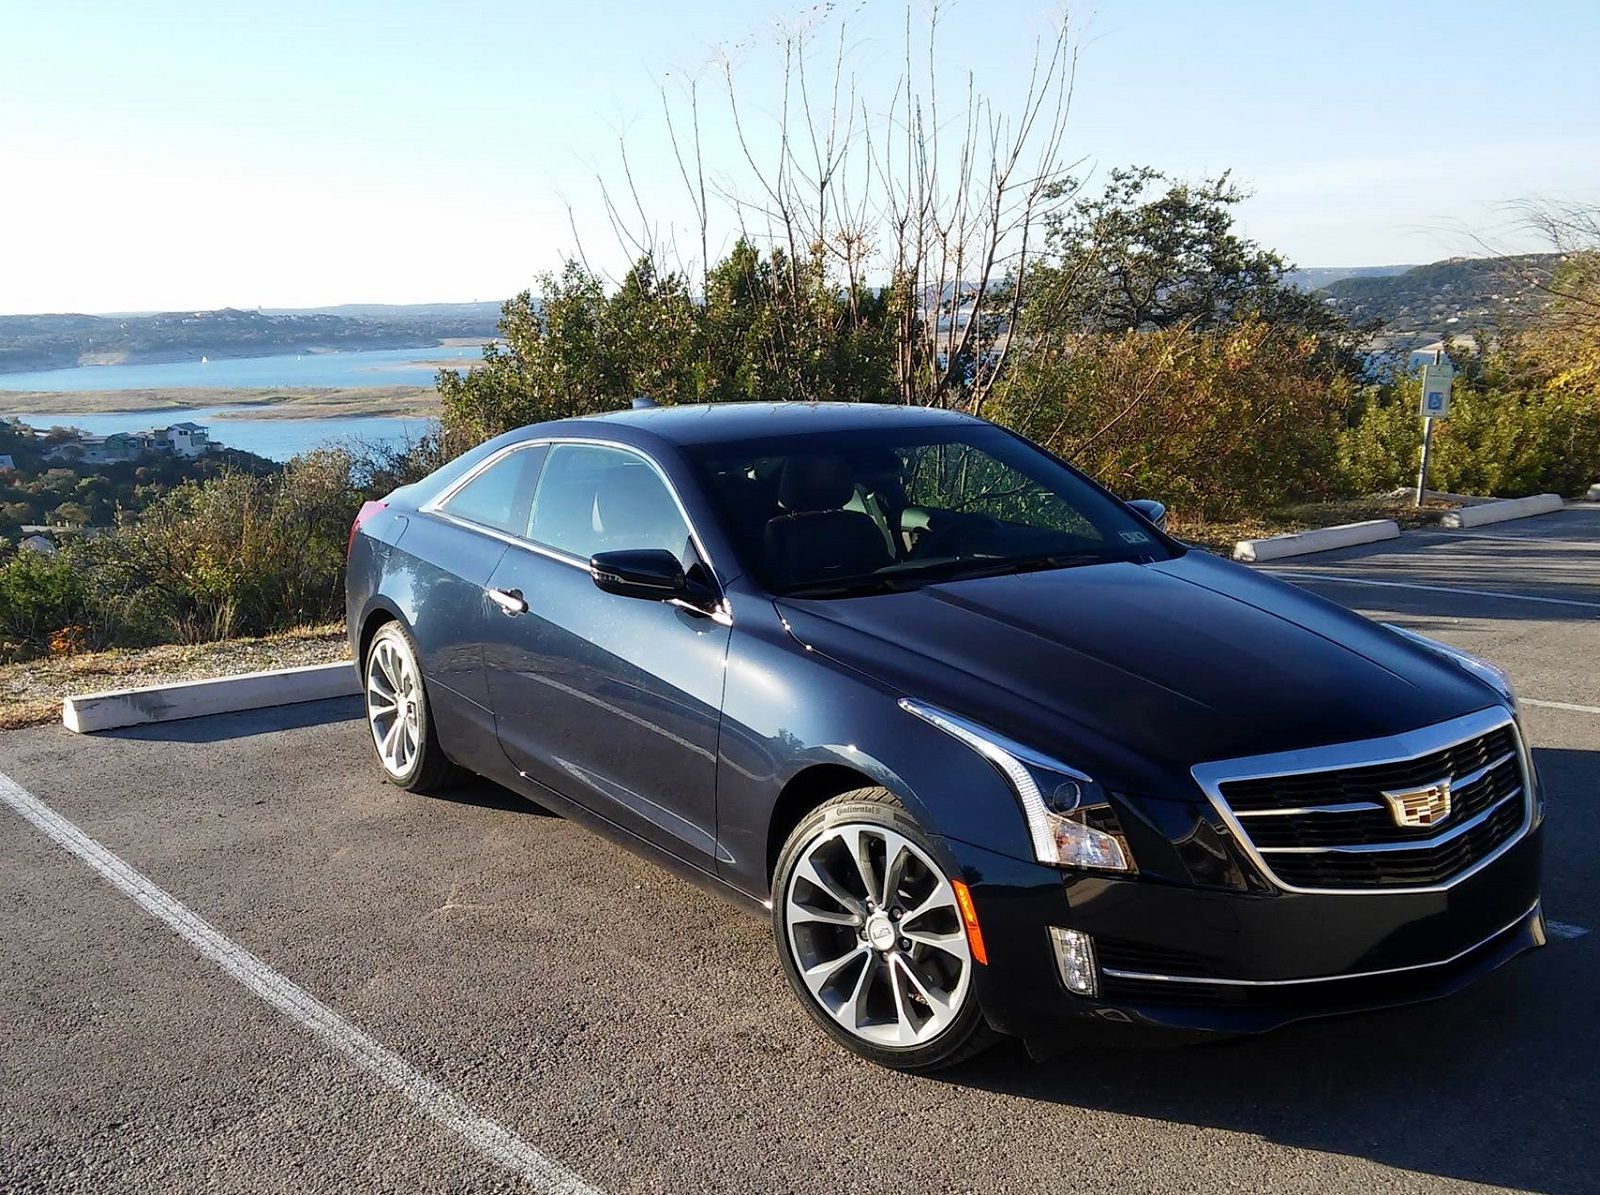 2015 cadillac ats coupe accessories cadillac pinterest accessories coupe and cadillac